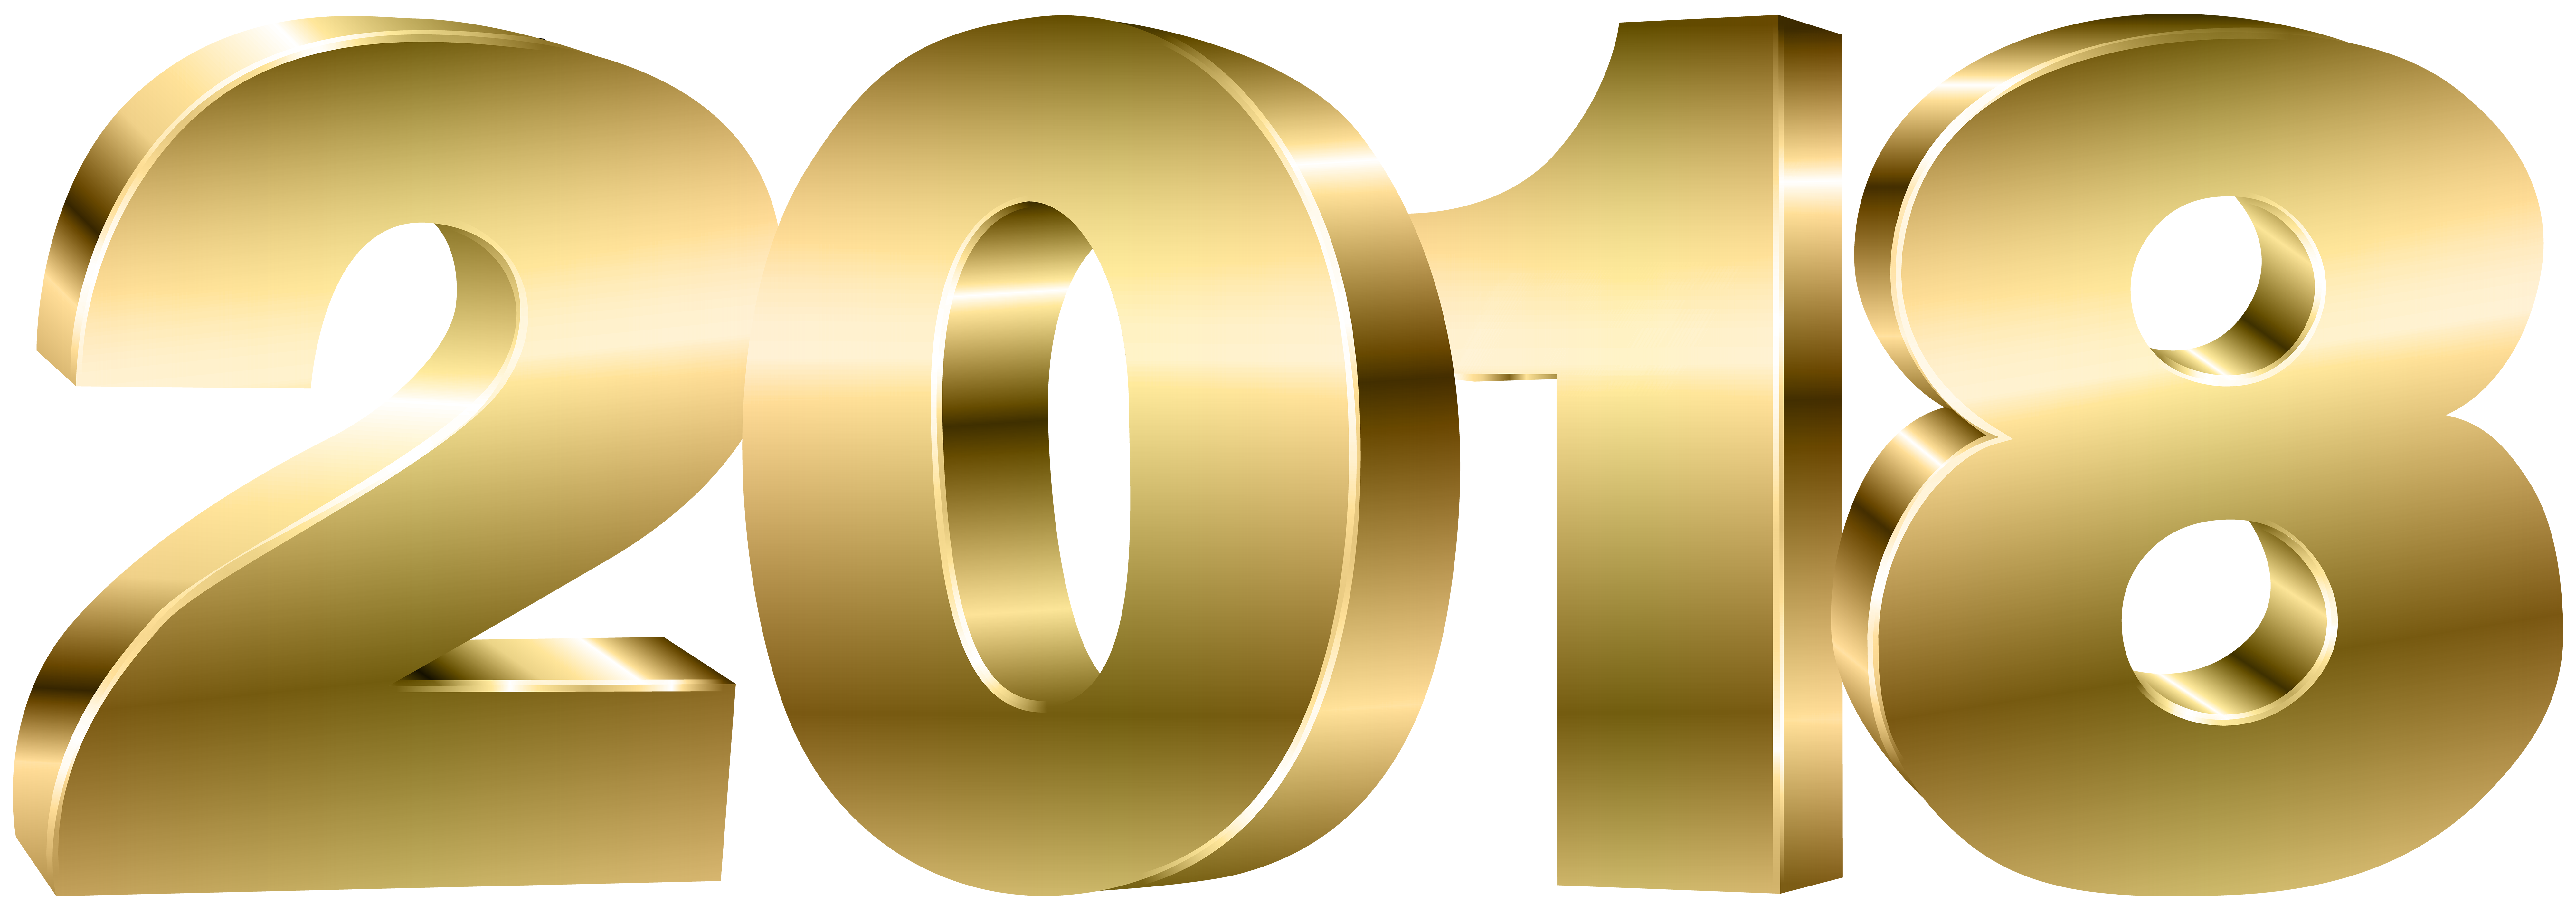 2018 Gold PNG Clipart Image.